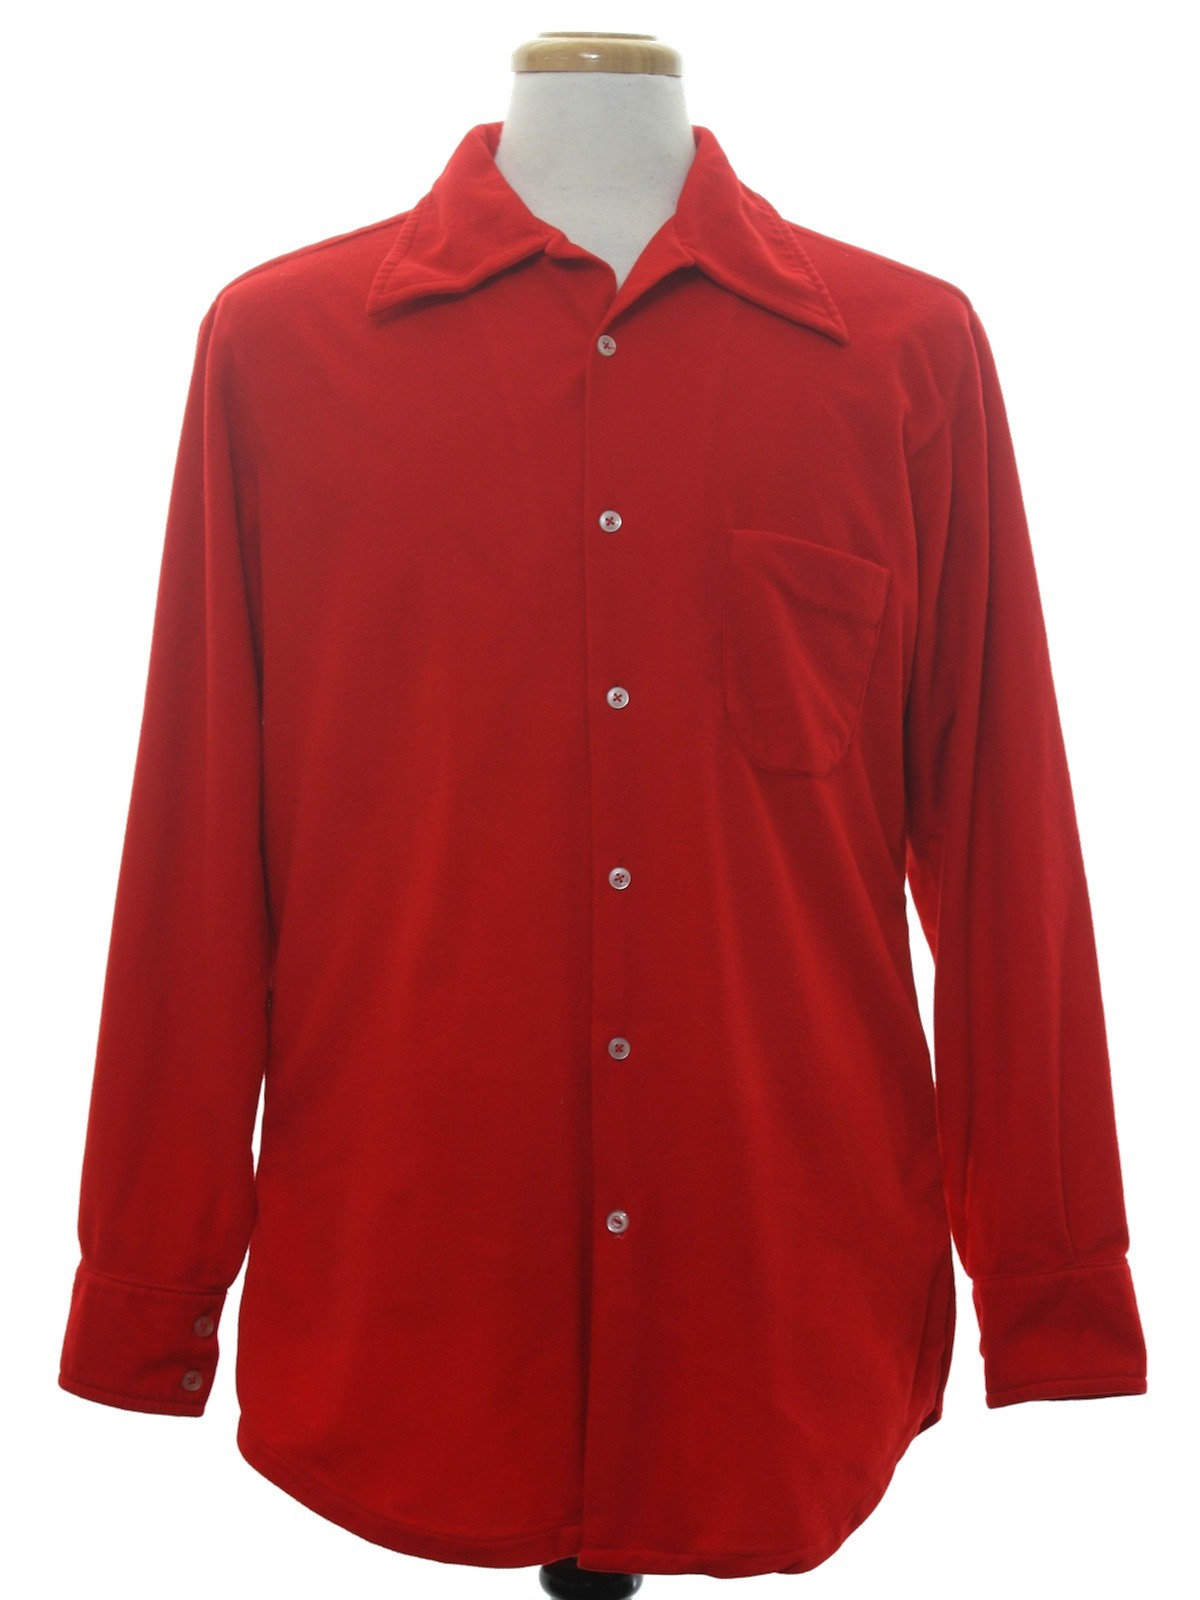 Vintage seventies shirt late 70s or early 80s no label for Cotton polyester flannel shirts